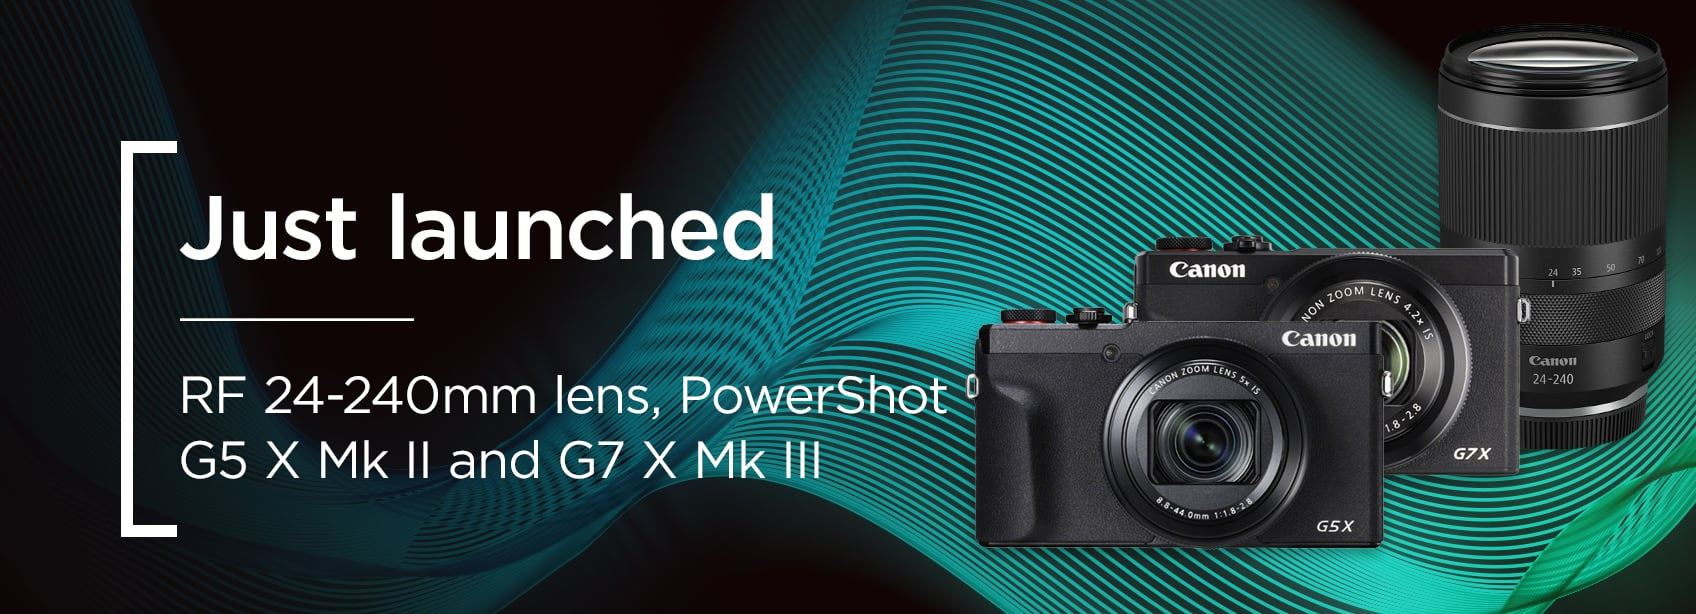 Just launched | RF 24-240mm lens, PowerShot G5 X MkII and G7 X Mk III